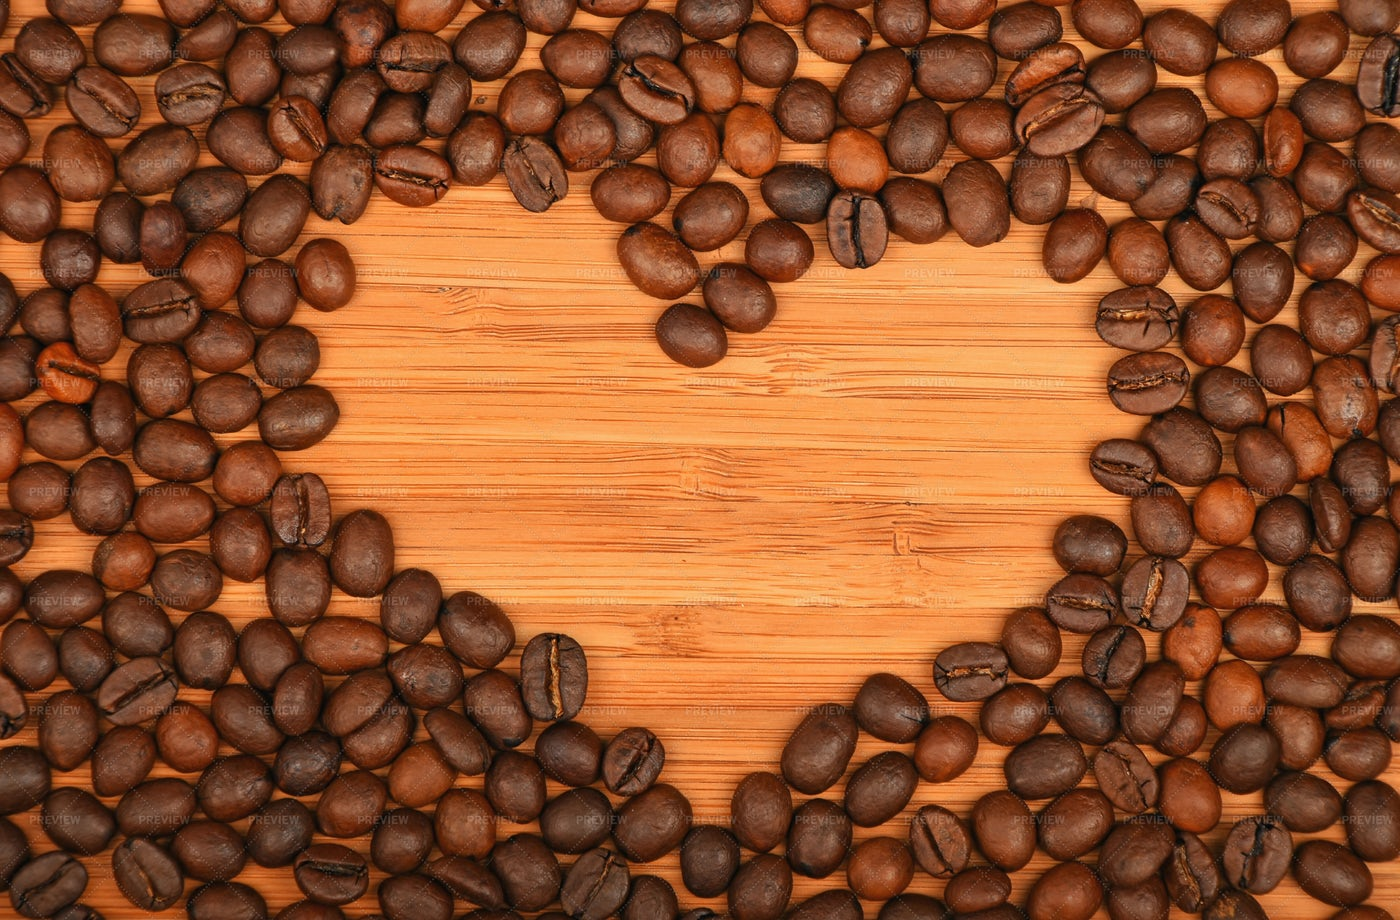 Heart Shape In Coffee Beans: Stock Photos